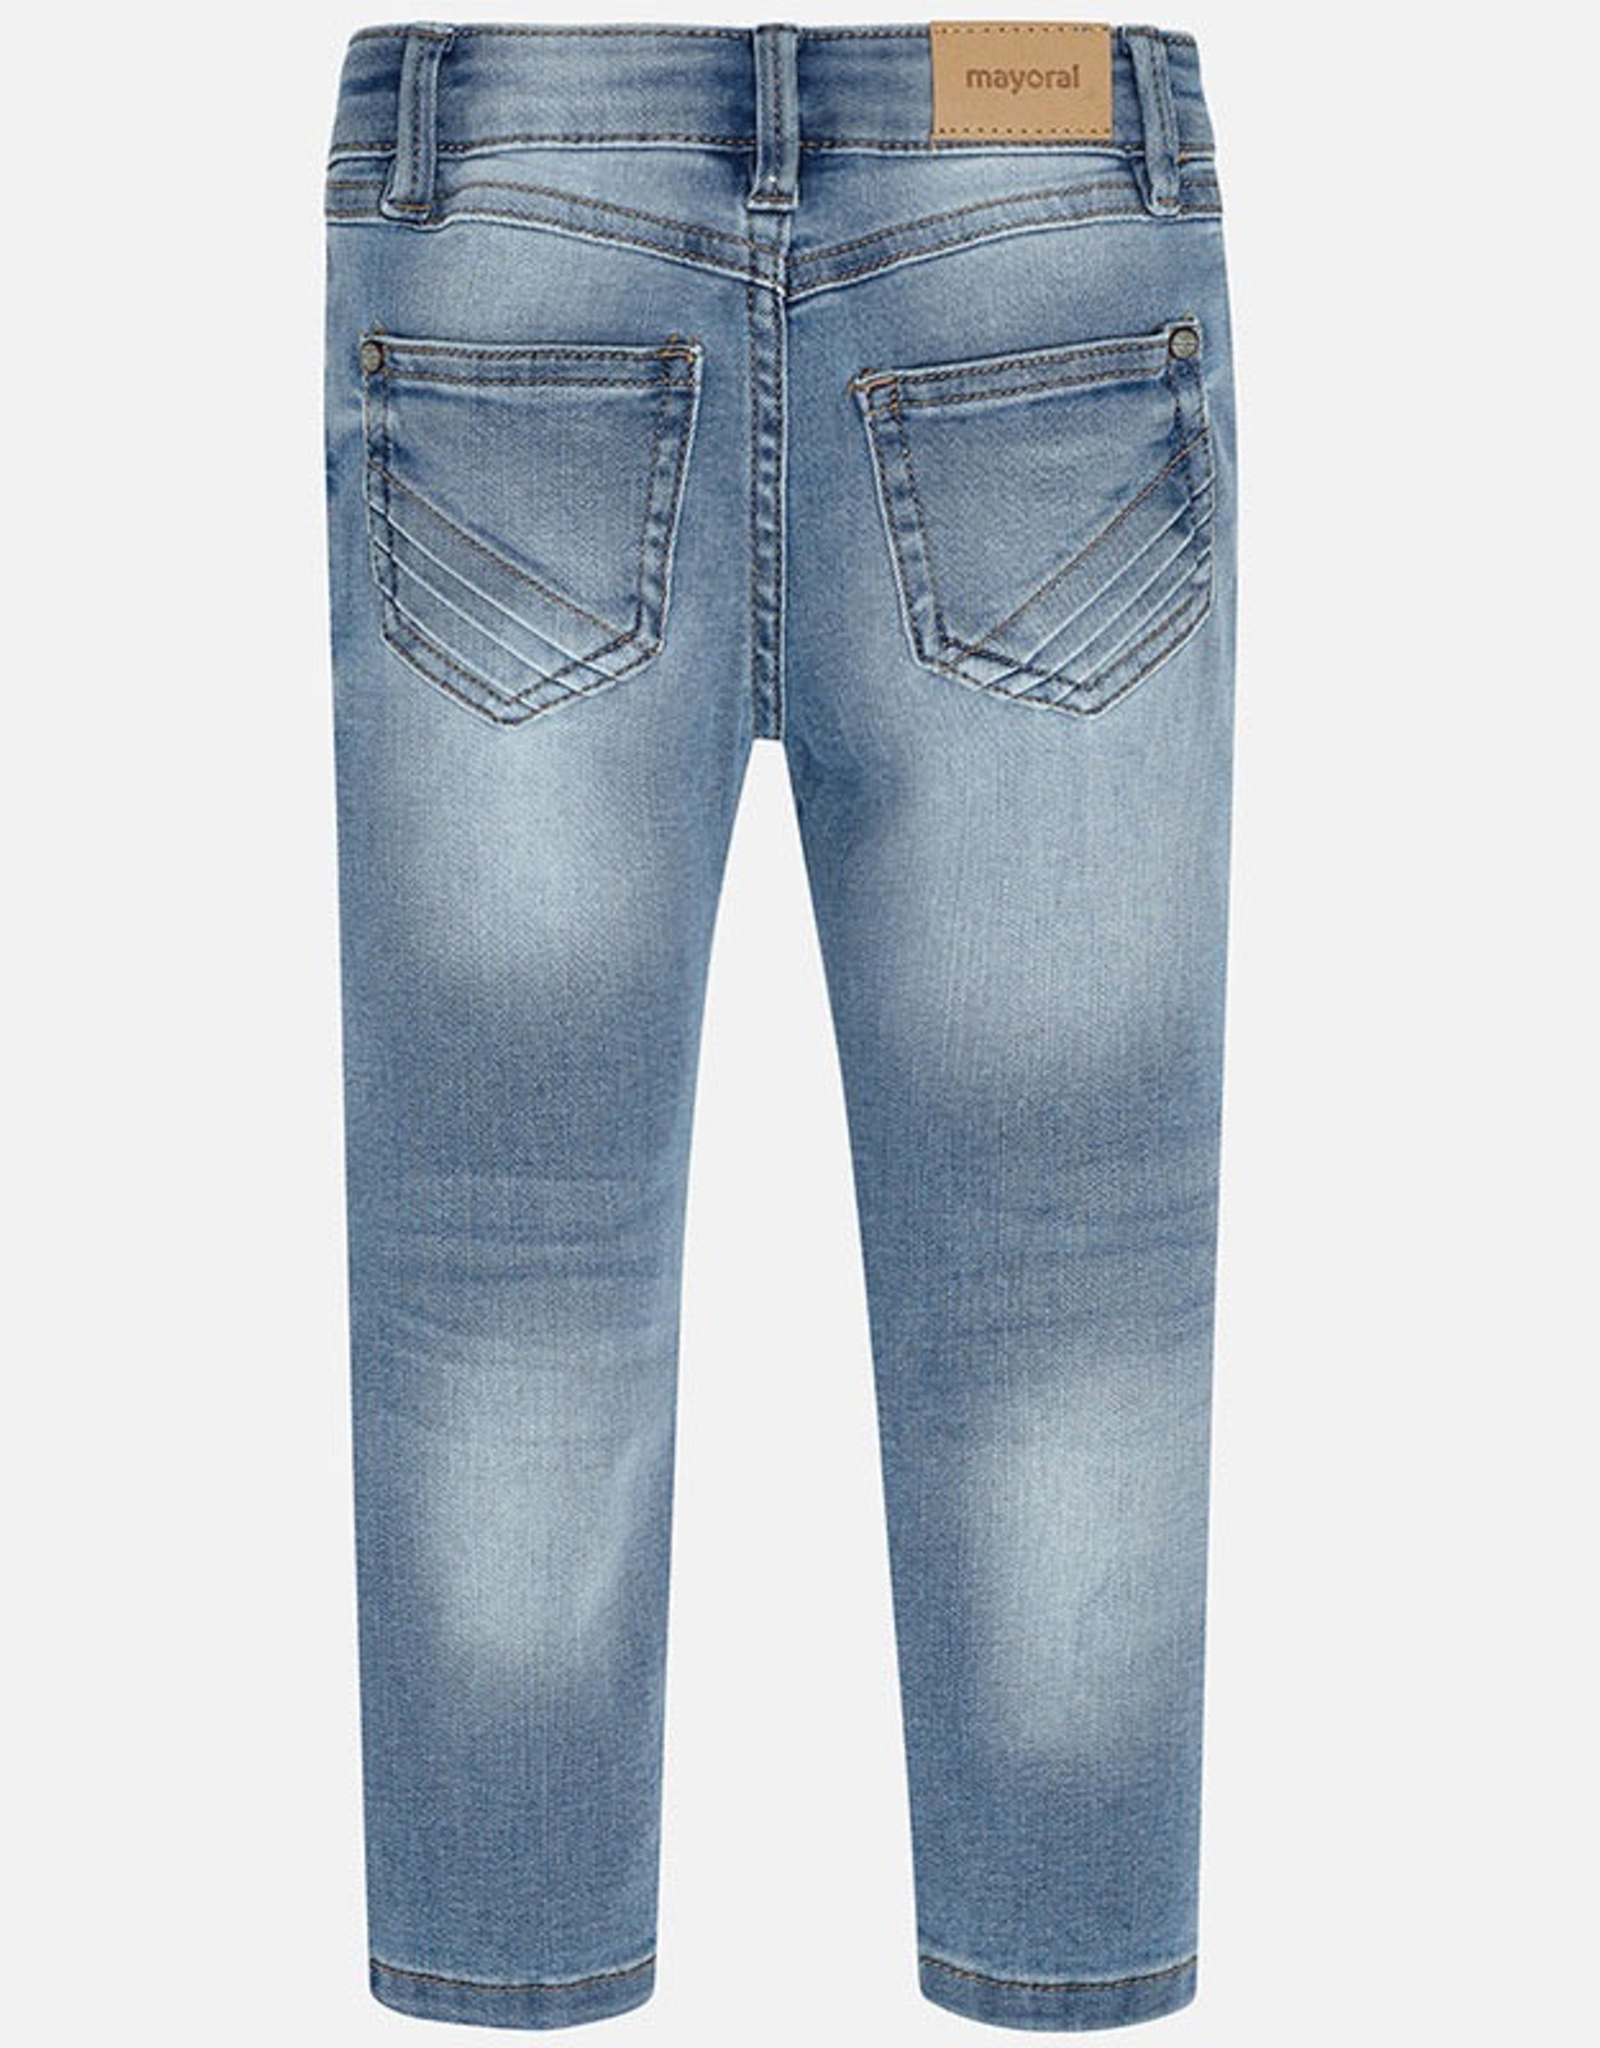 Mayoral Faded Skinny Jeans for Girl